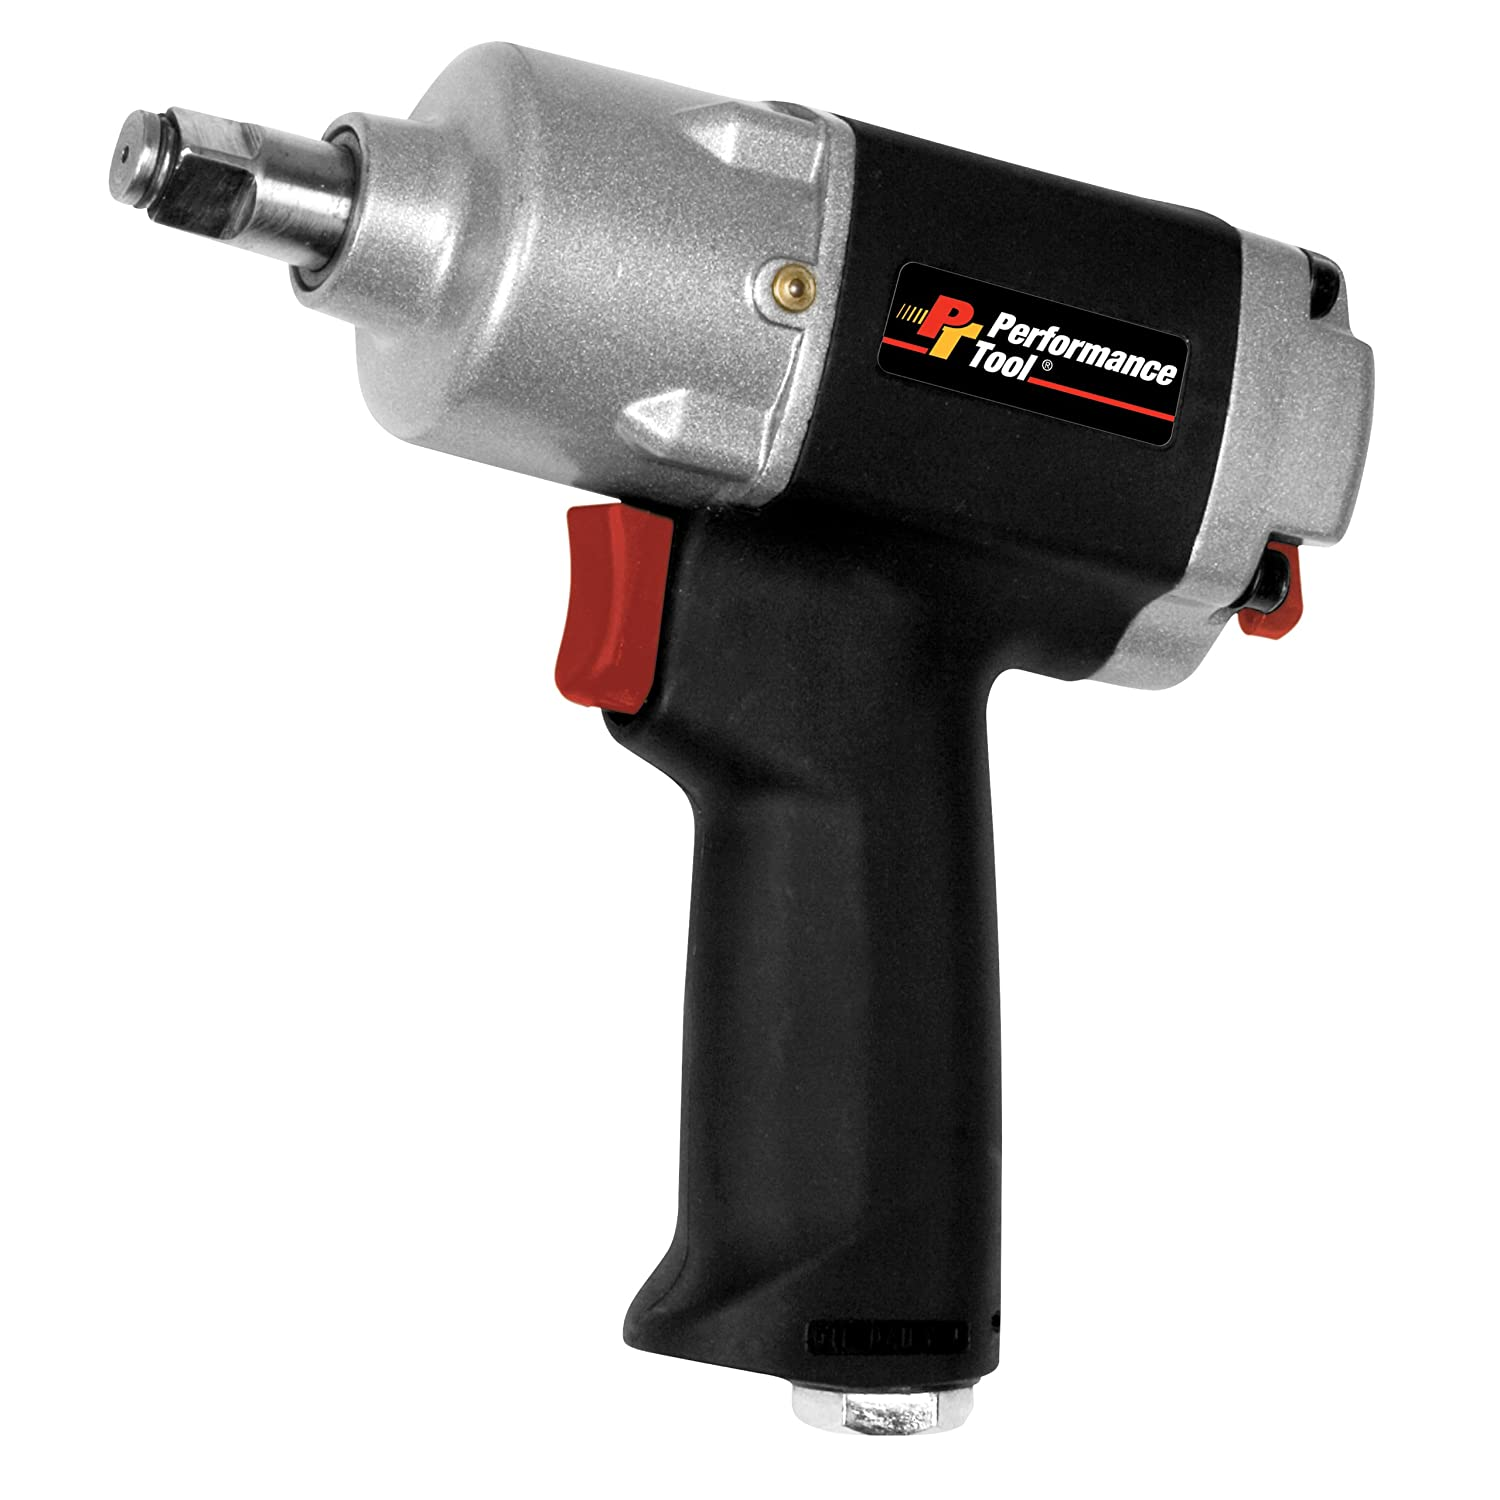 Performance Tool M624 1/2-Inch Composite Impact Wrench Wilmar Corporation